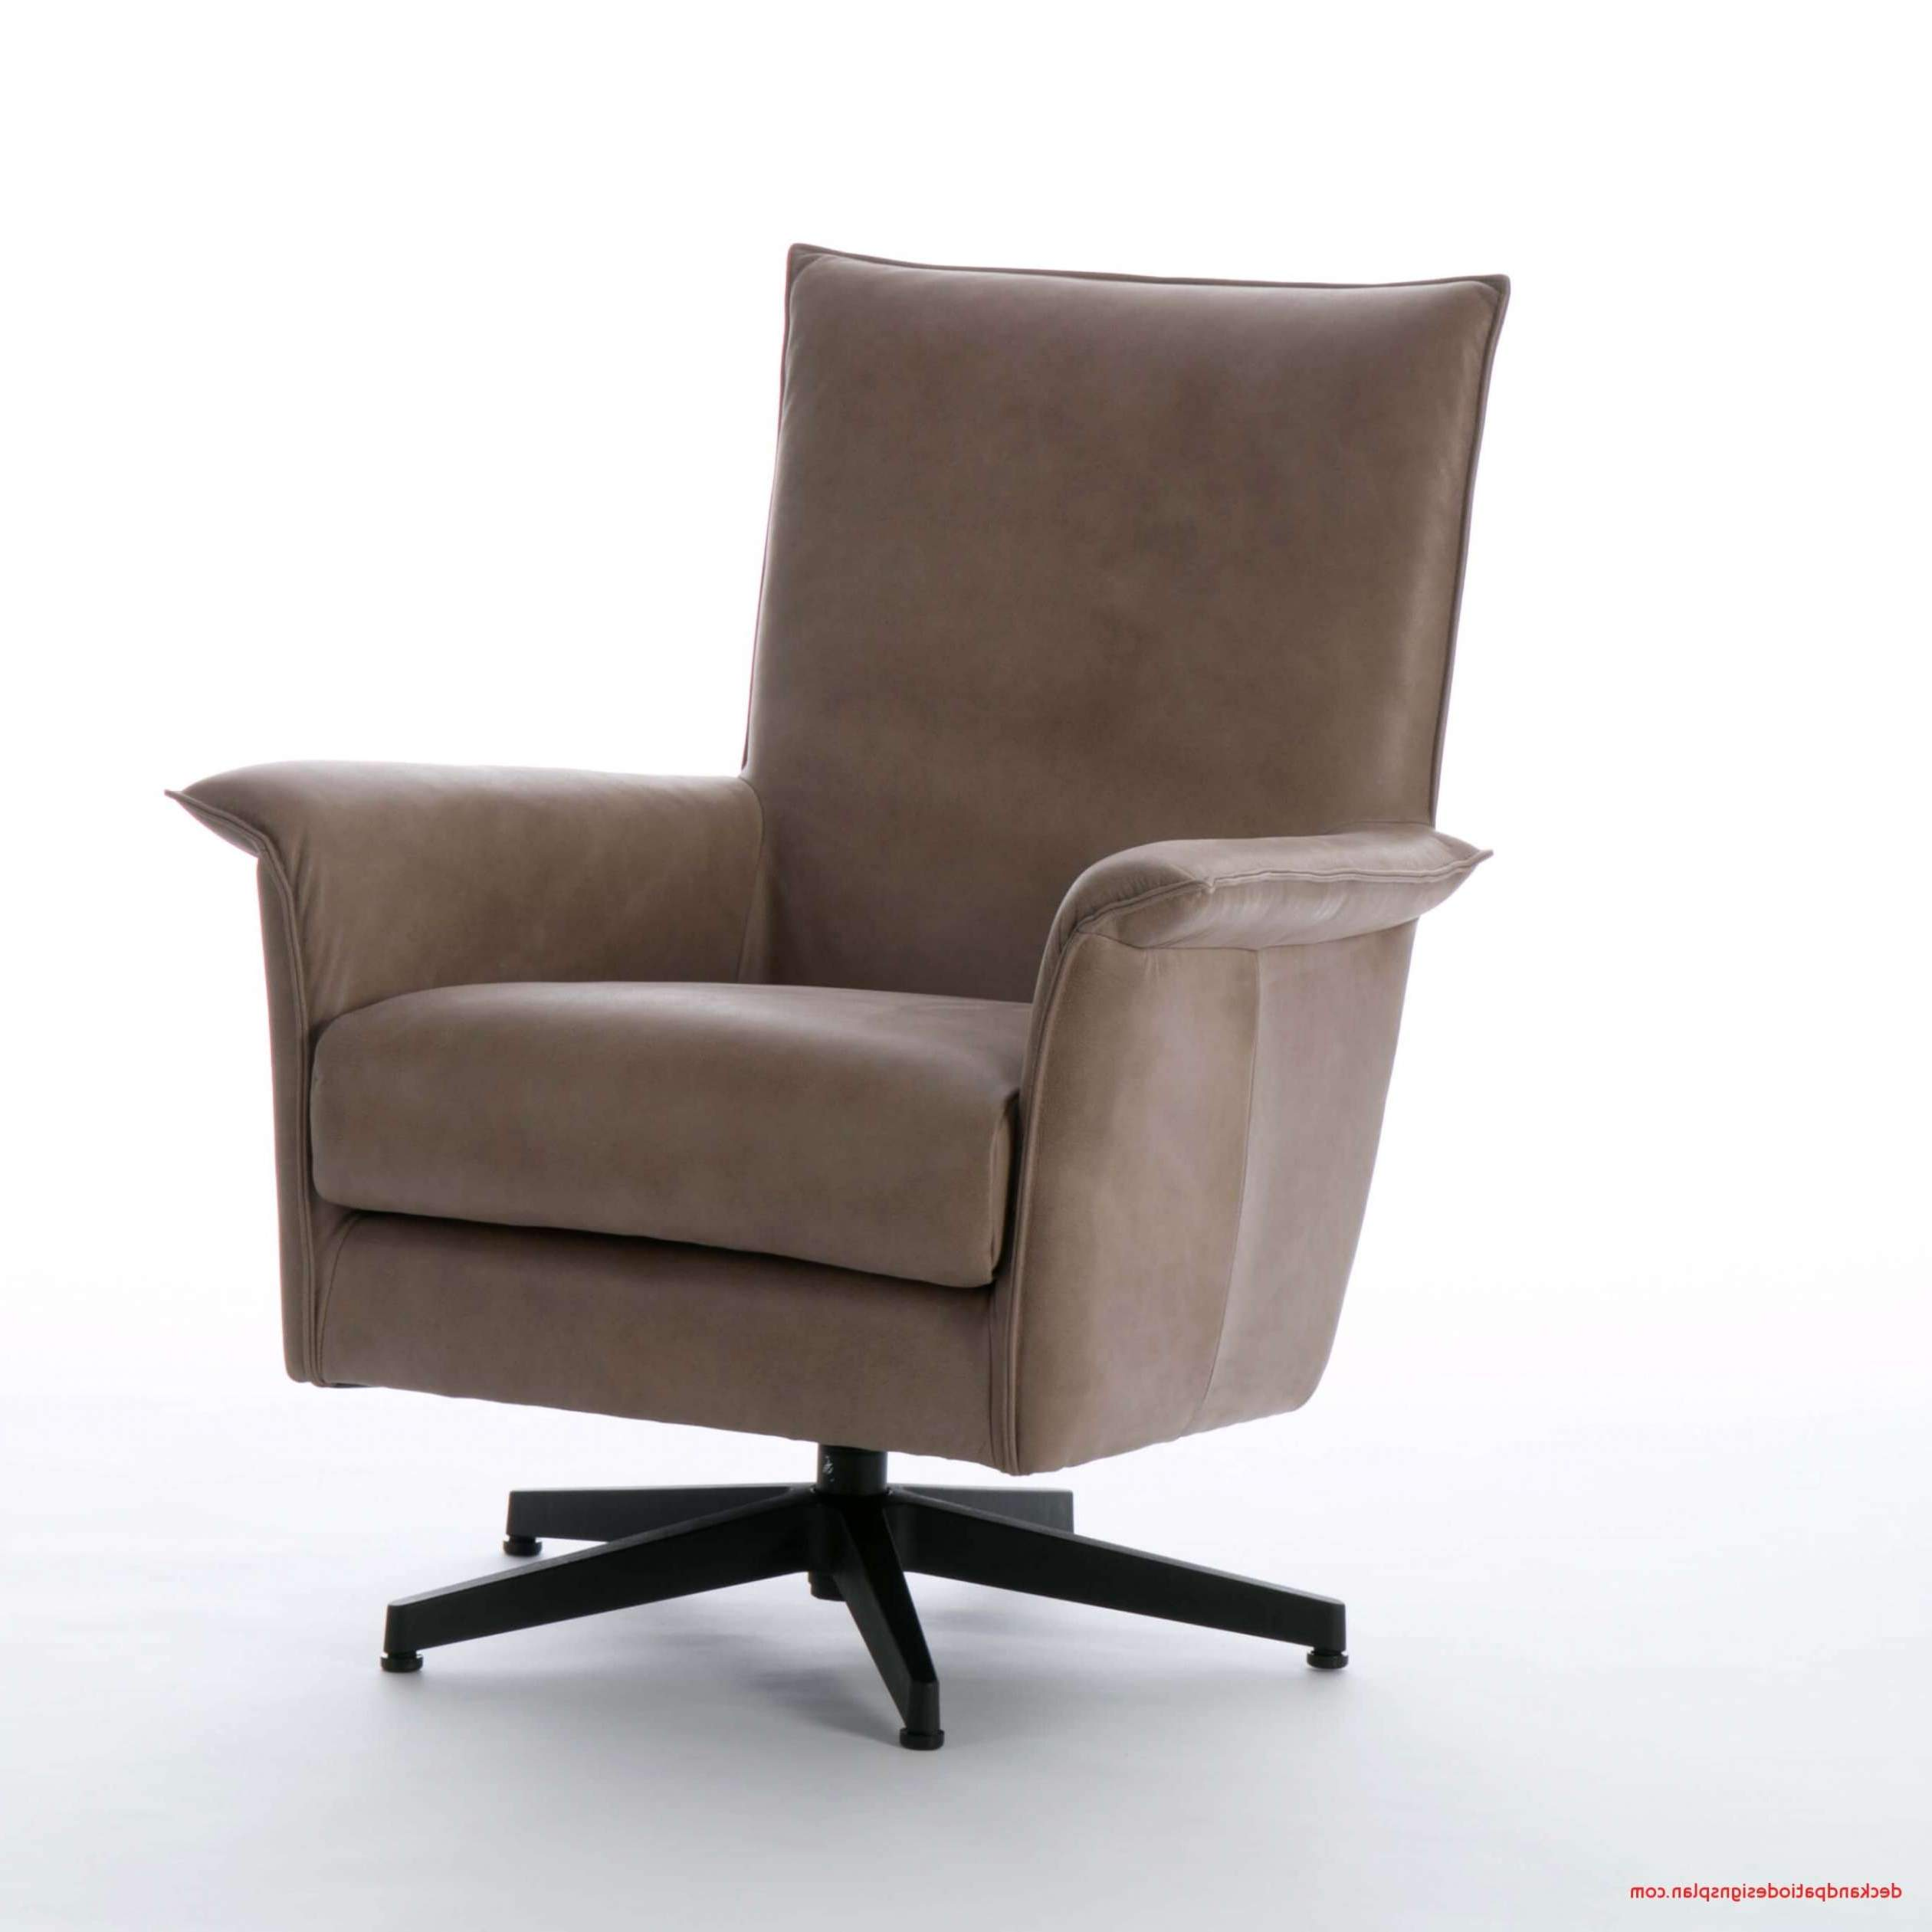 lounge sessel stoff gubi stay lounge chair sessel nhasfabo of fernsehsessel drehbar